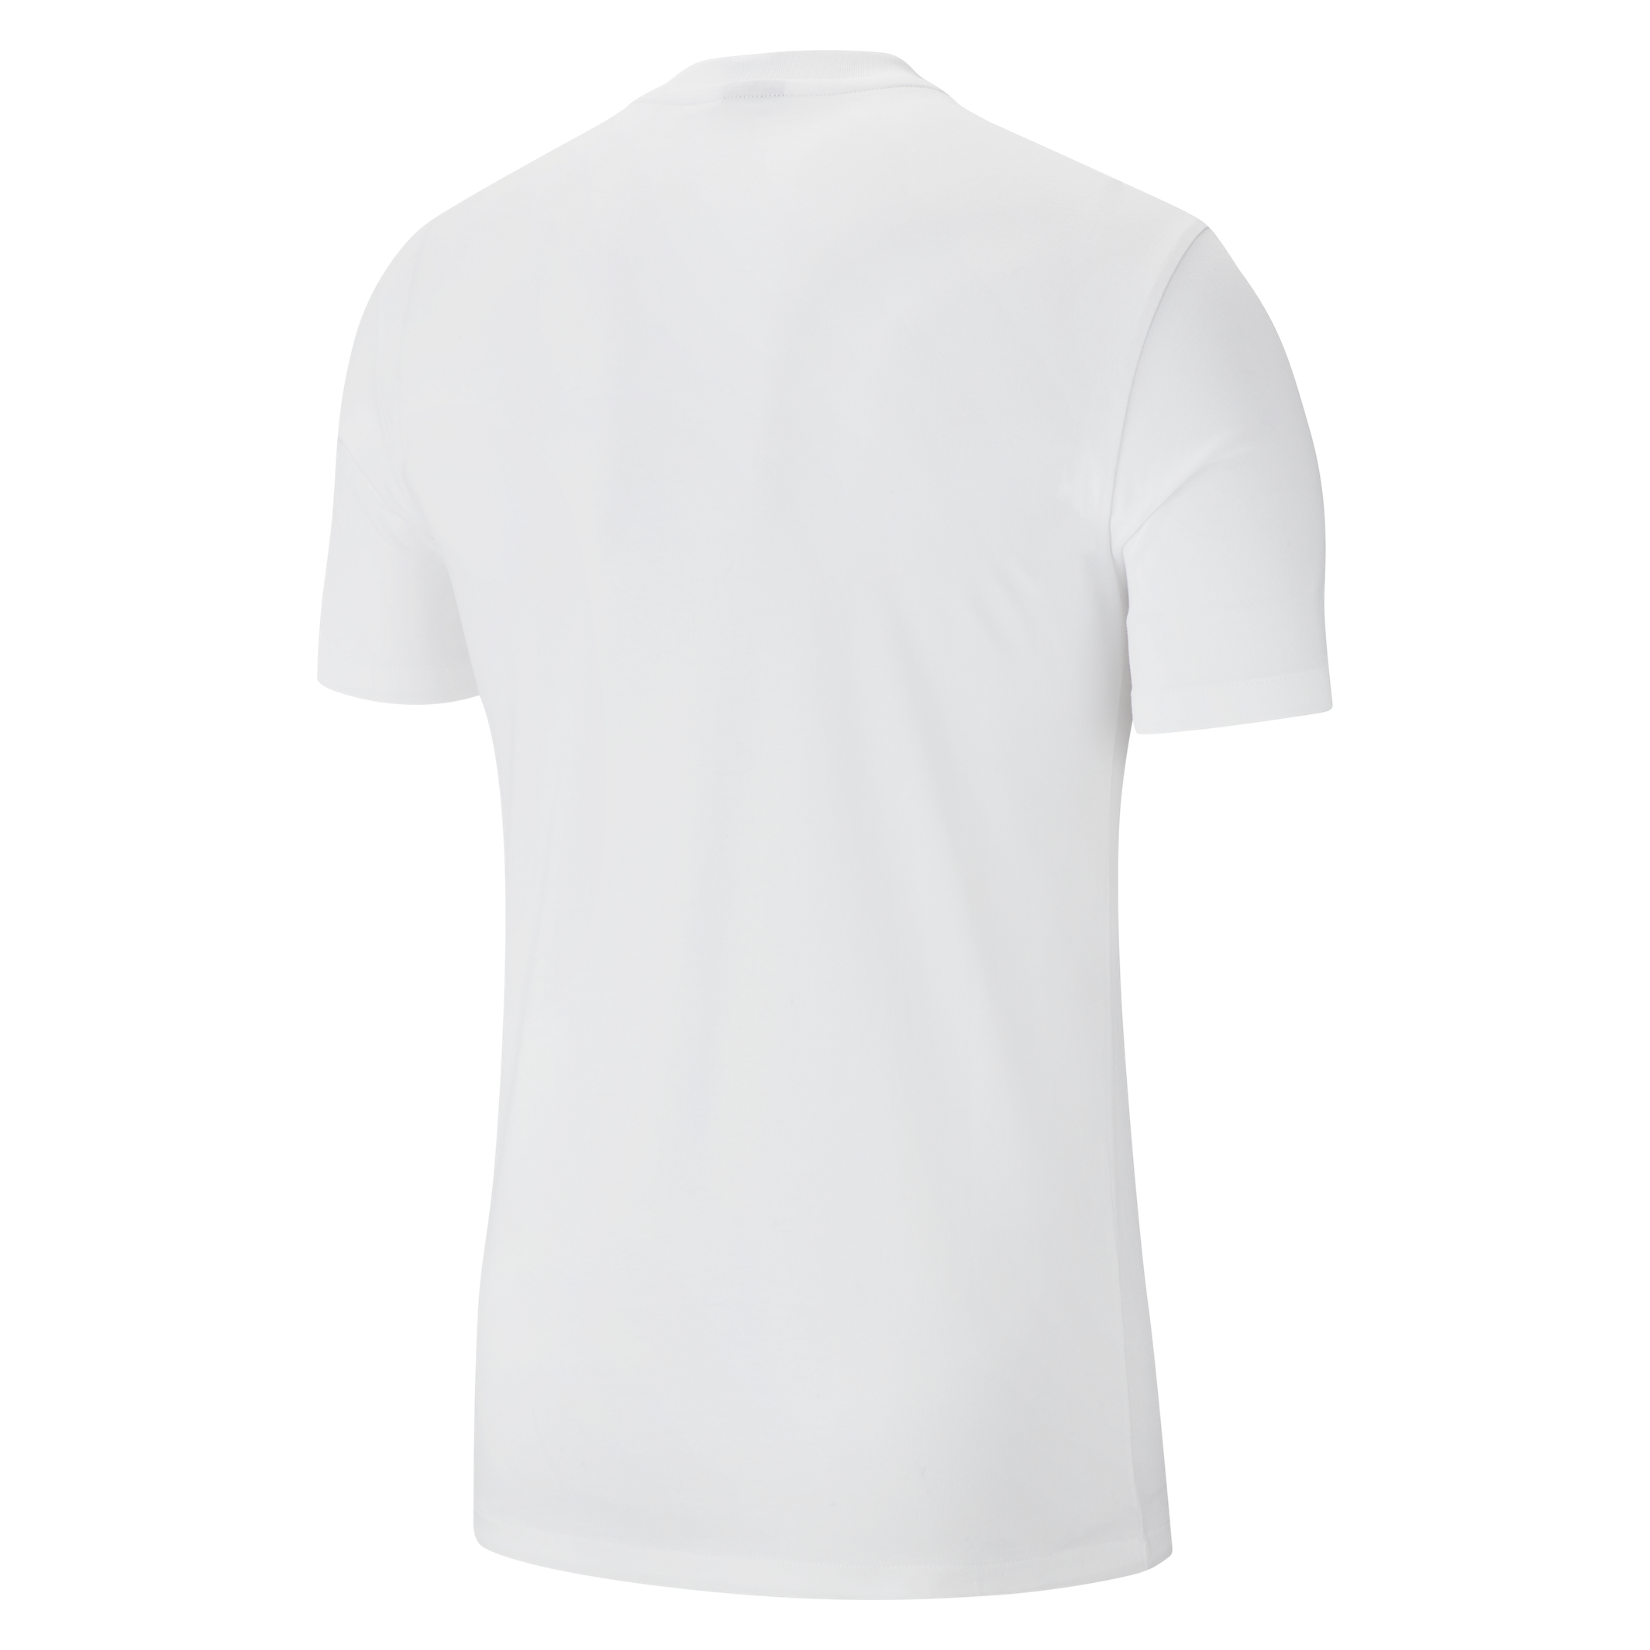 Nike Team Club 19 Tee White-White-White-Black